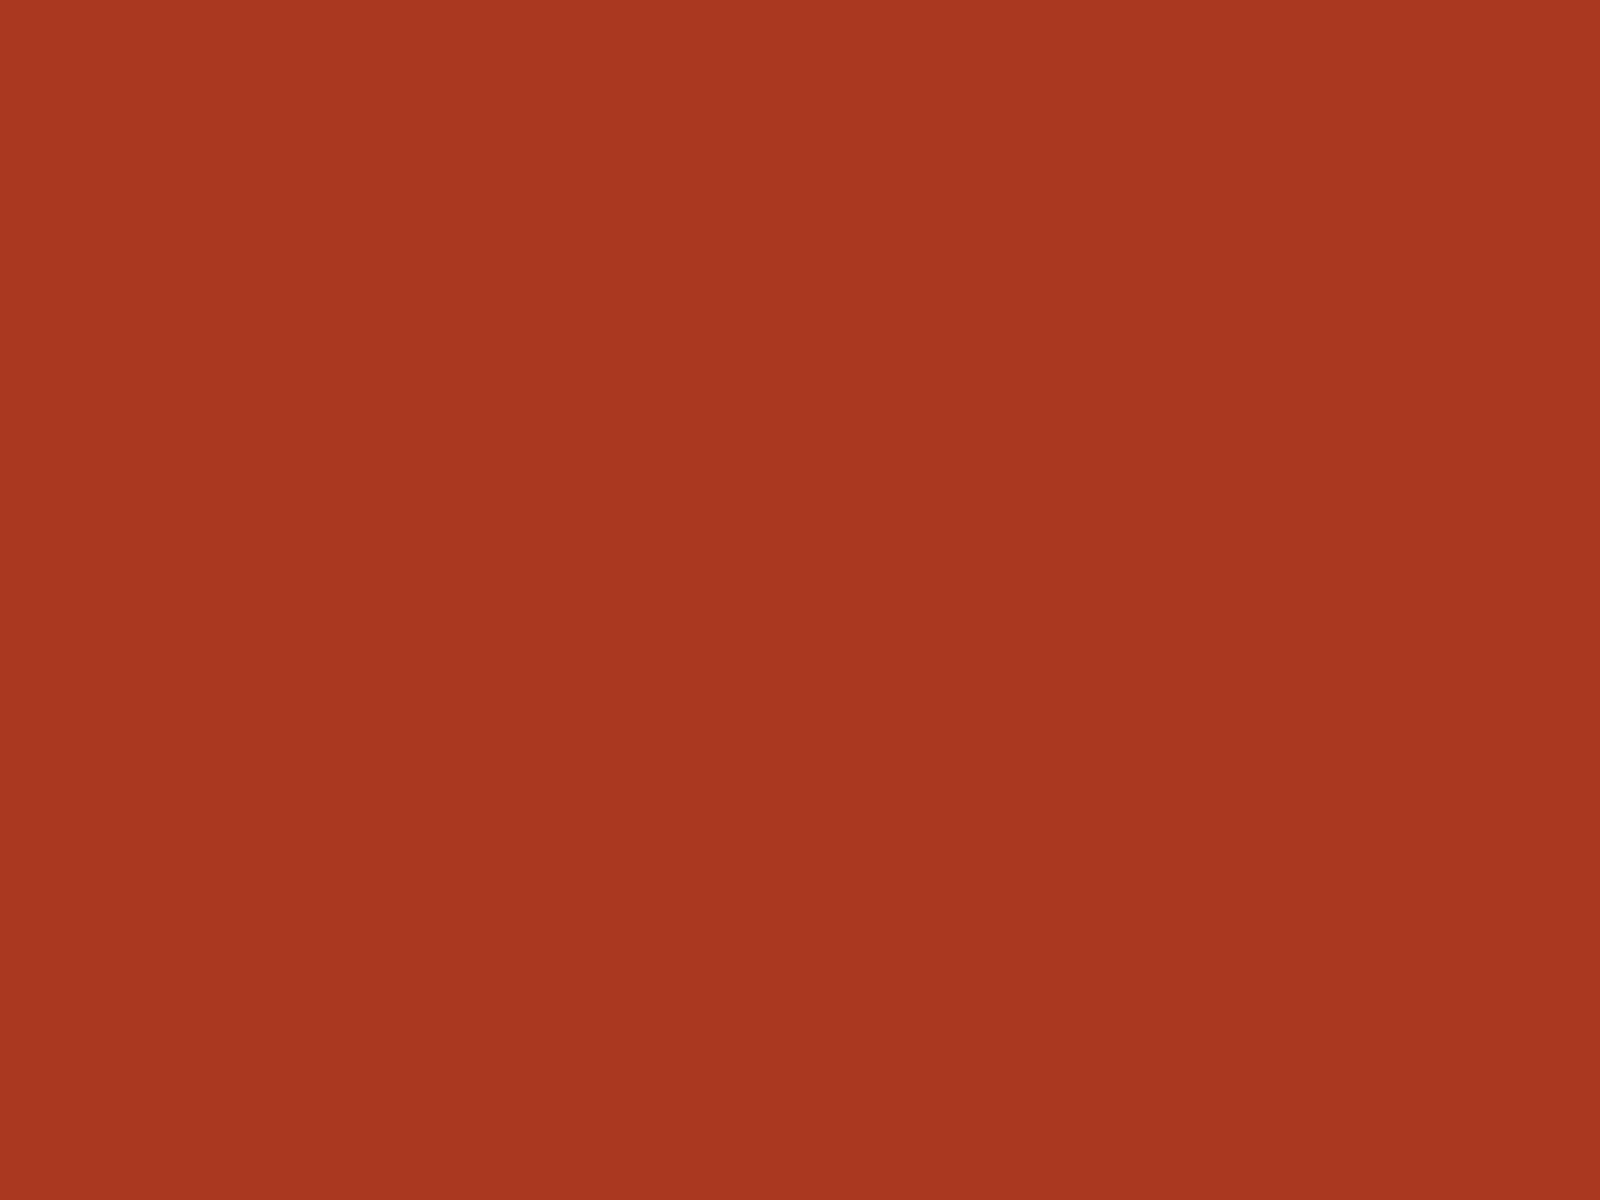 1600x1200 Chinese Red Solid Color Background